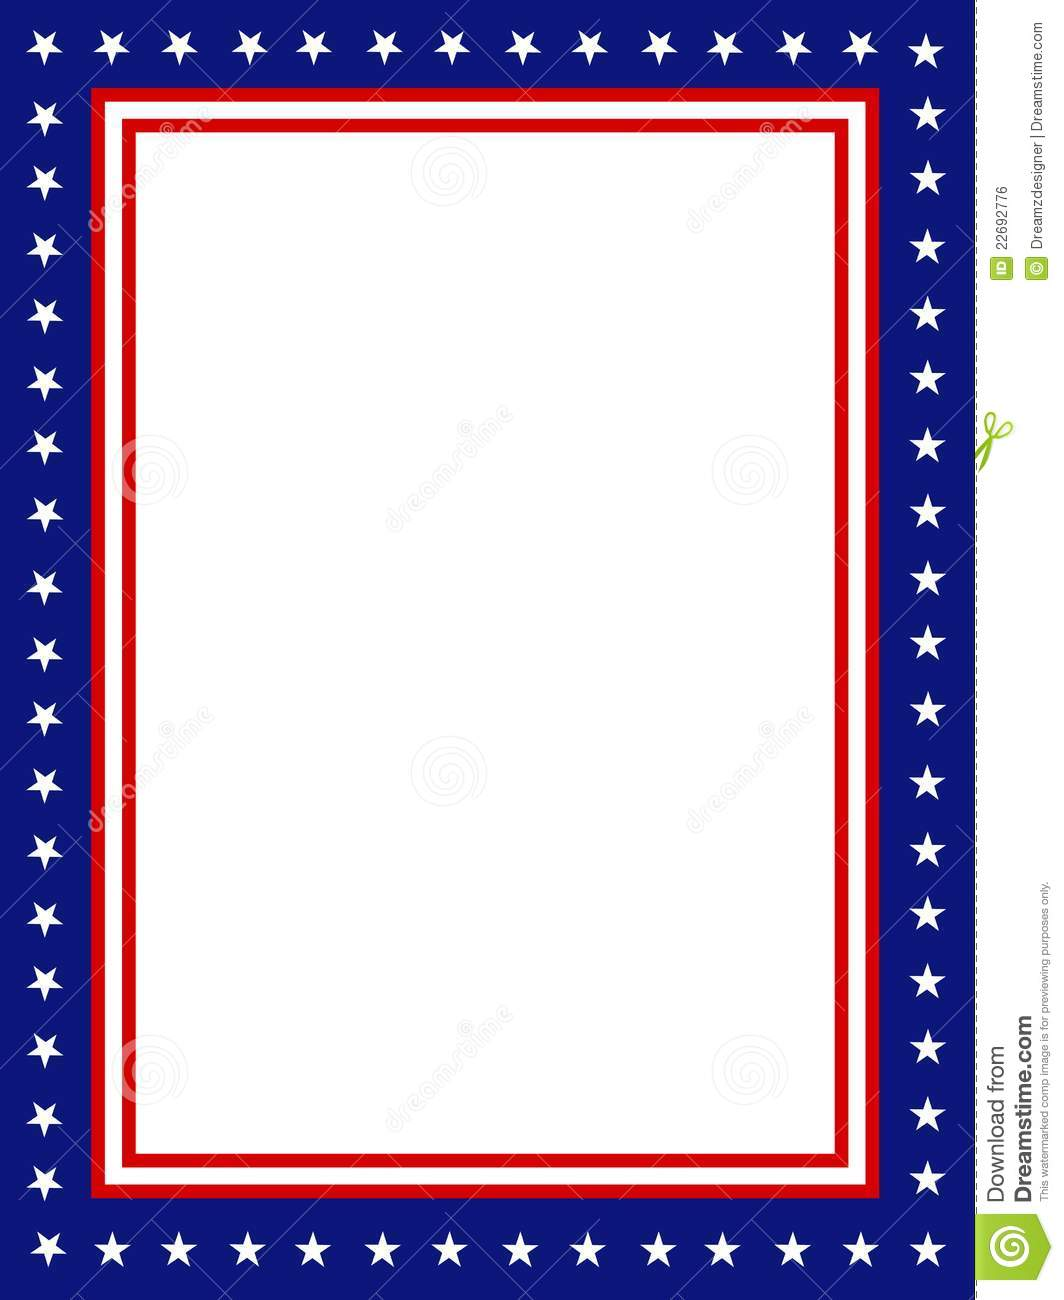 Patriotic border frame royalty free stock image image 22692776